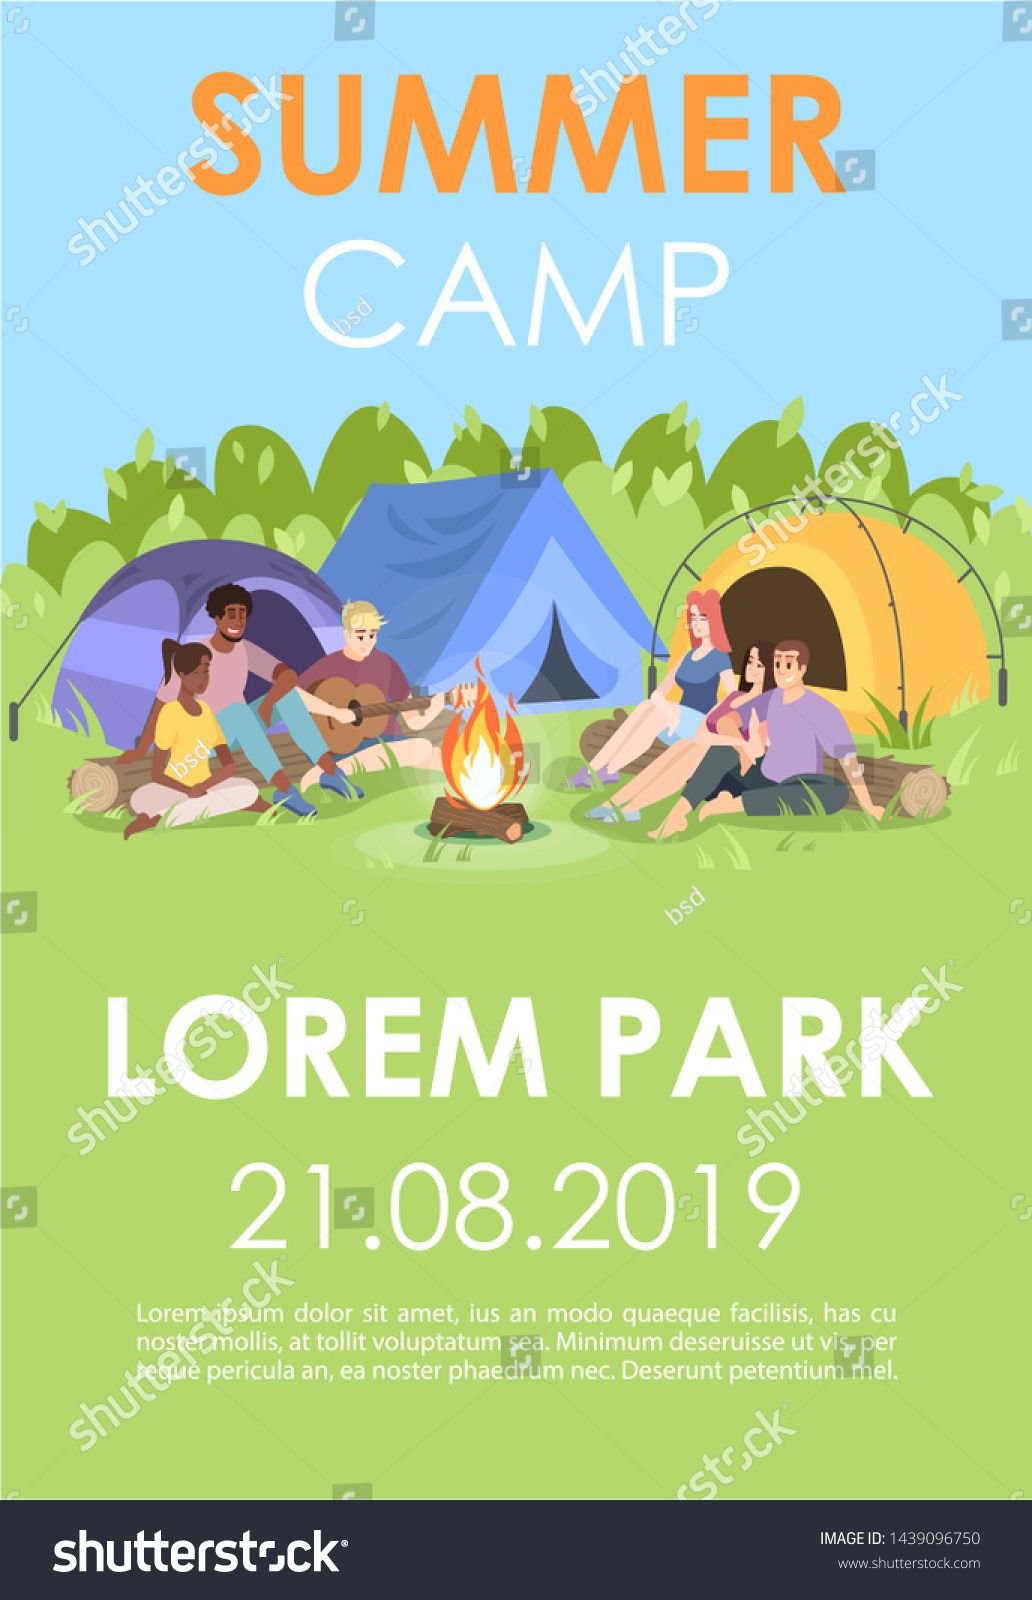 Summer camp brochure template. Outdoor recreation flyer